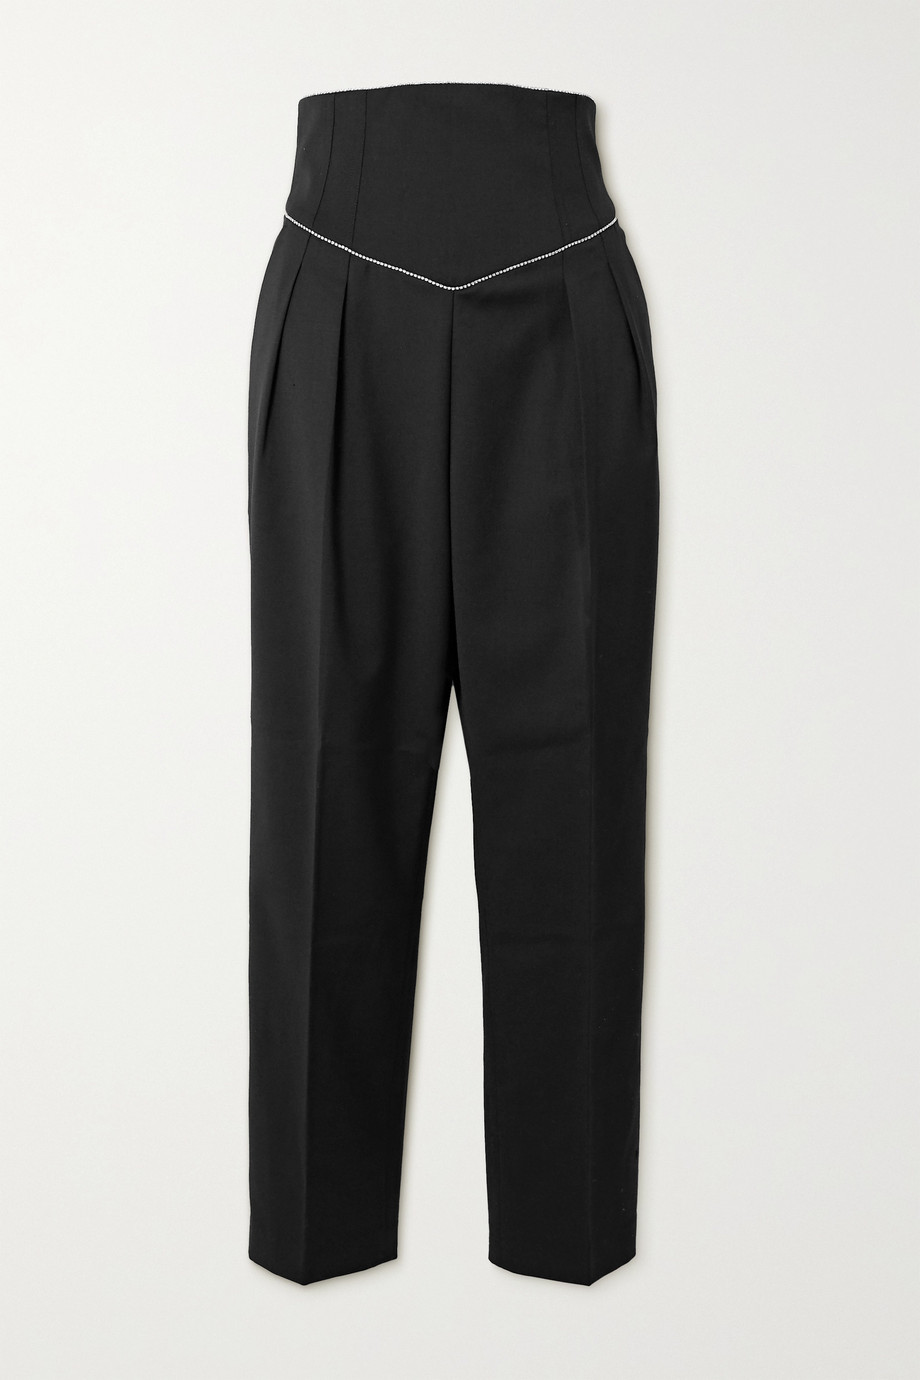 REBECCA VALLANCE Starwood crystal-embellished twill tapered pants